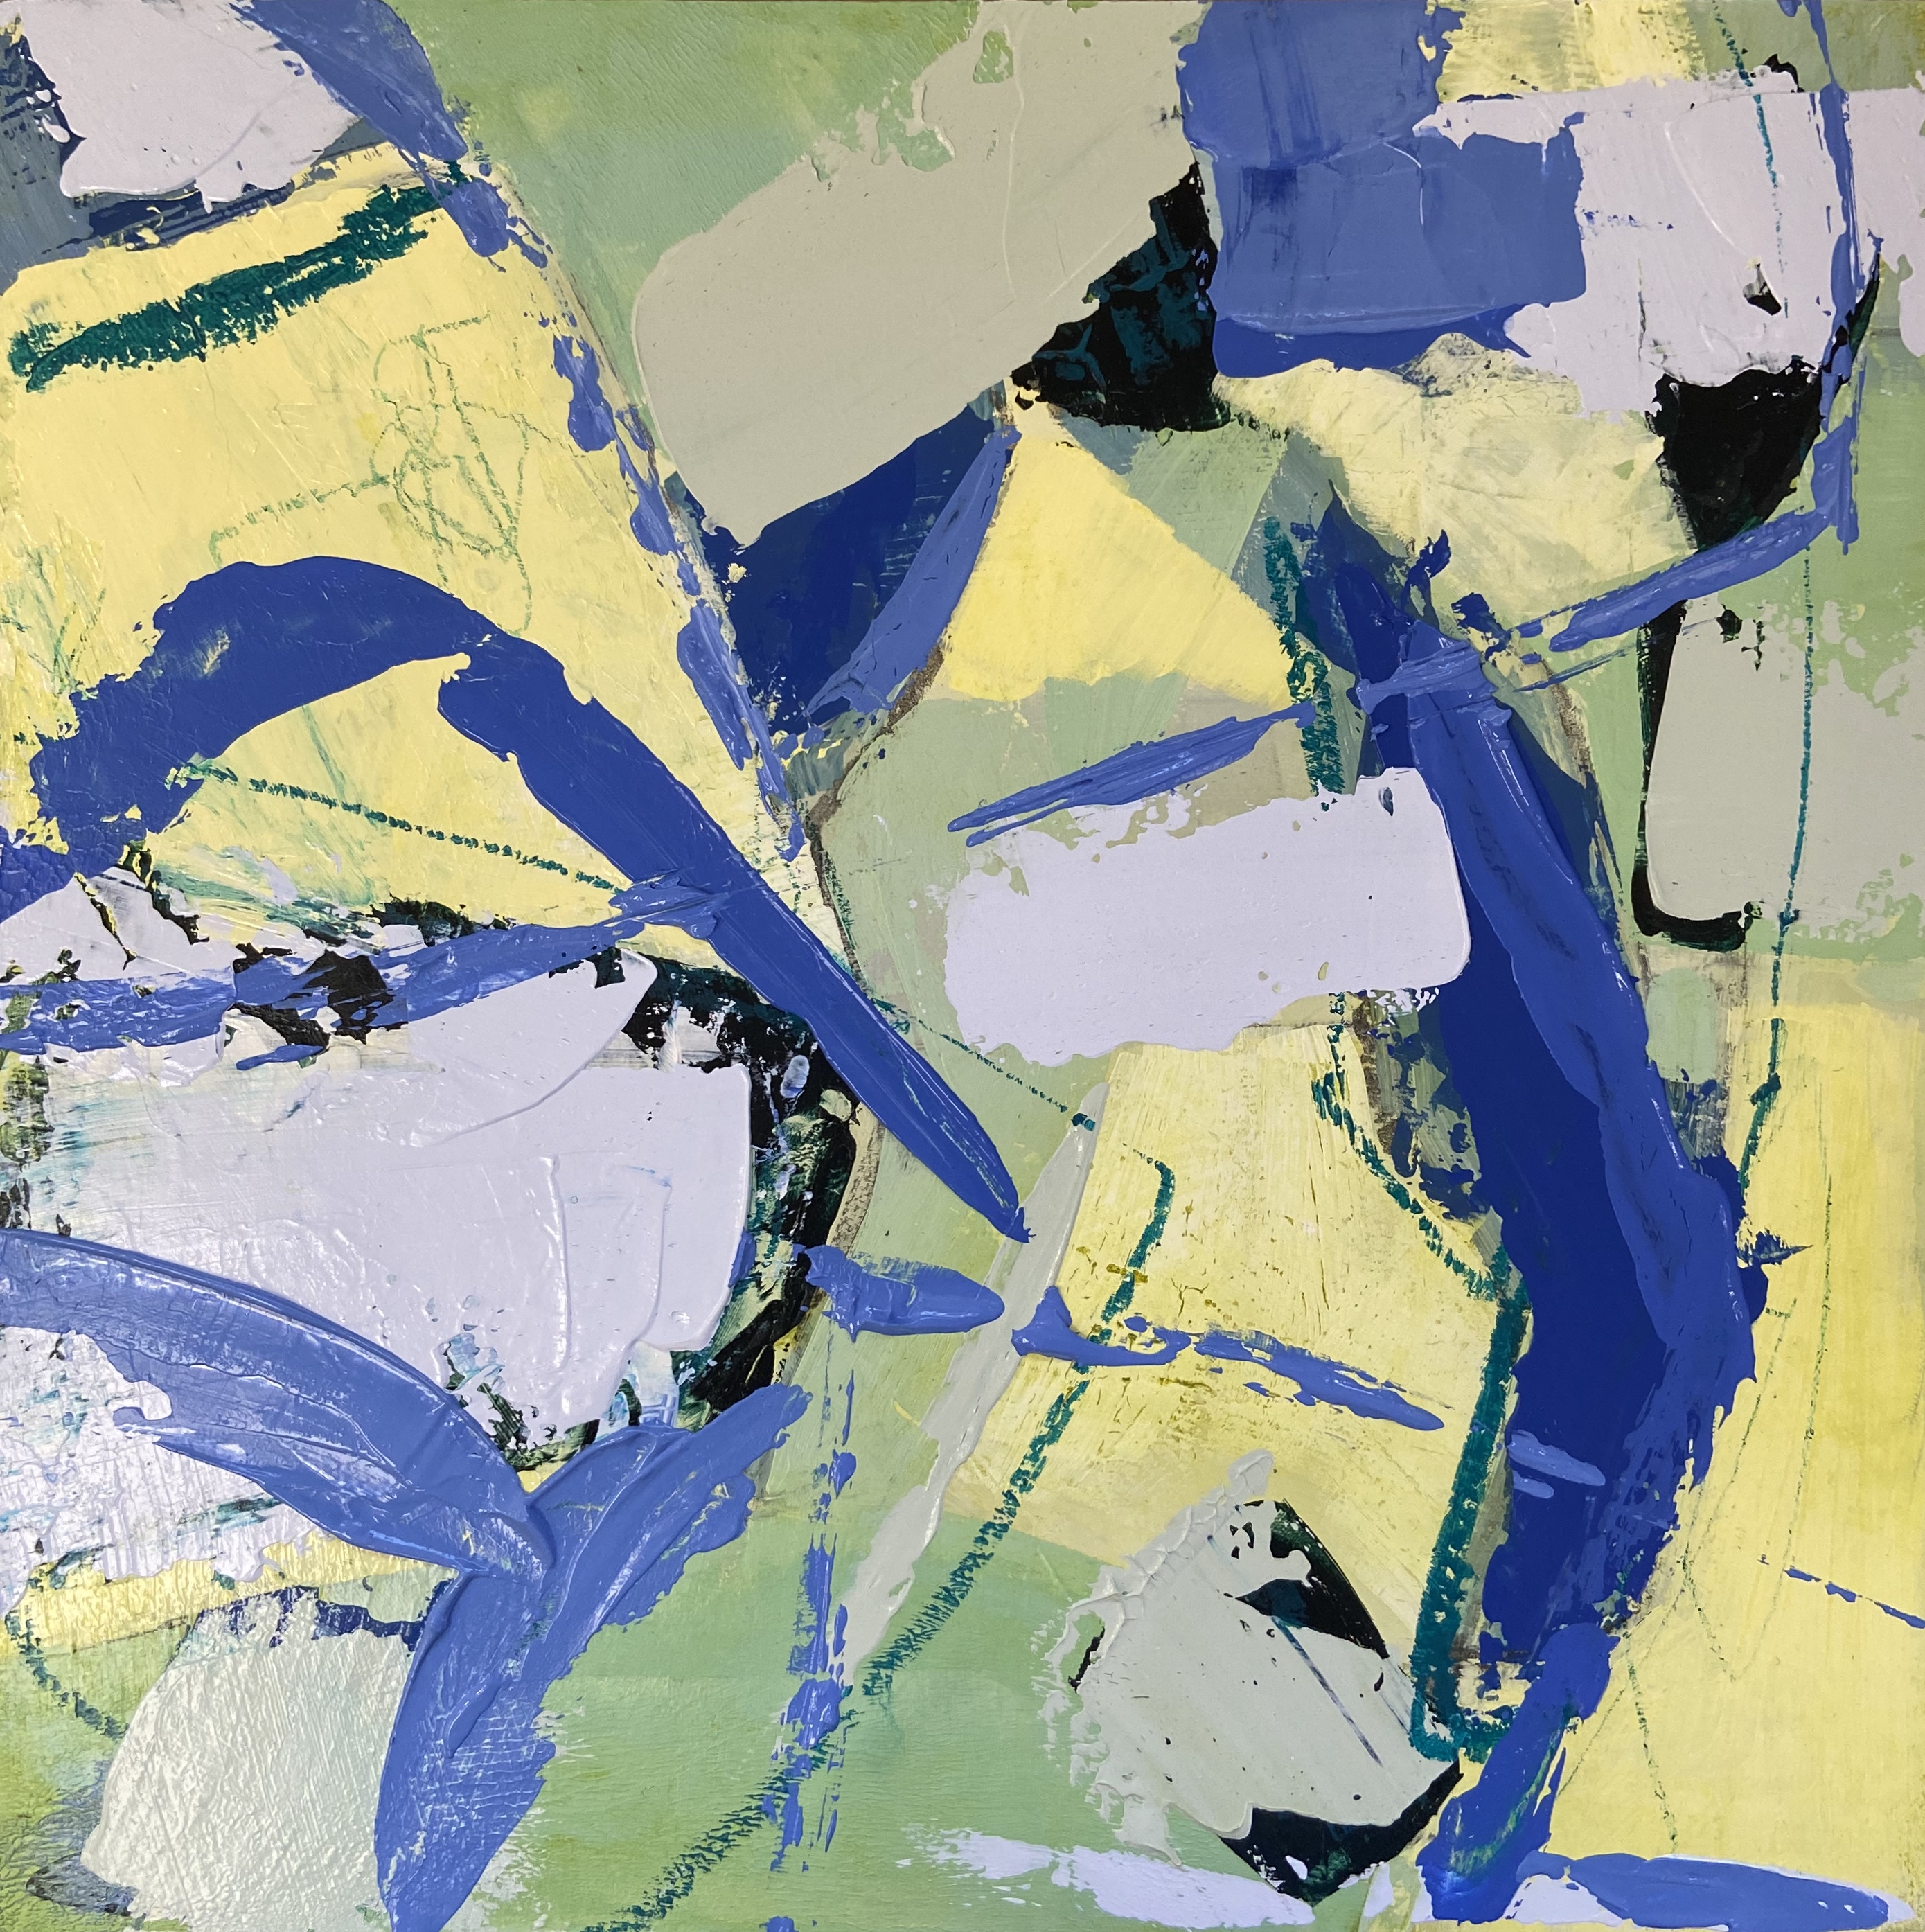 Lake in summer abstract painting.